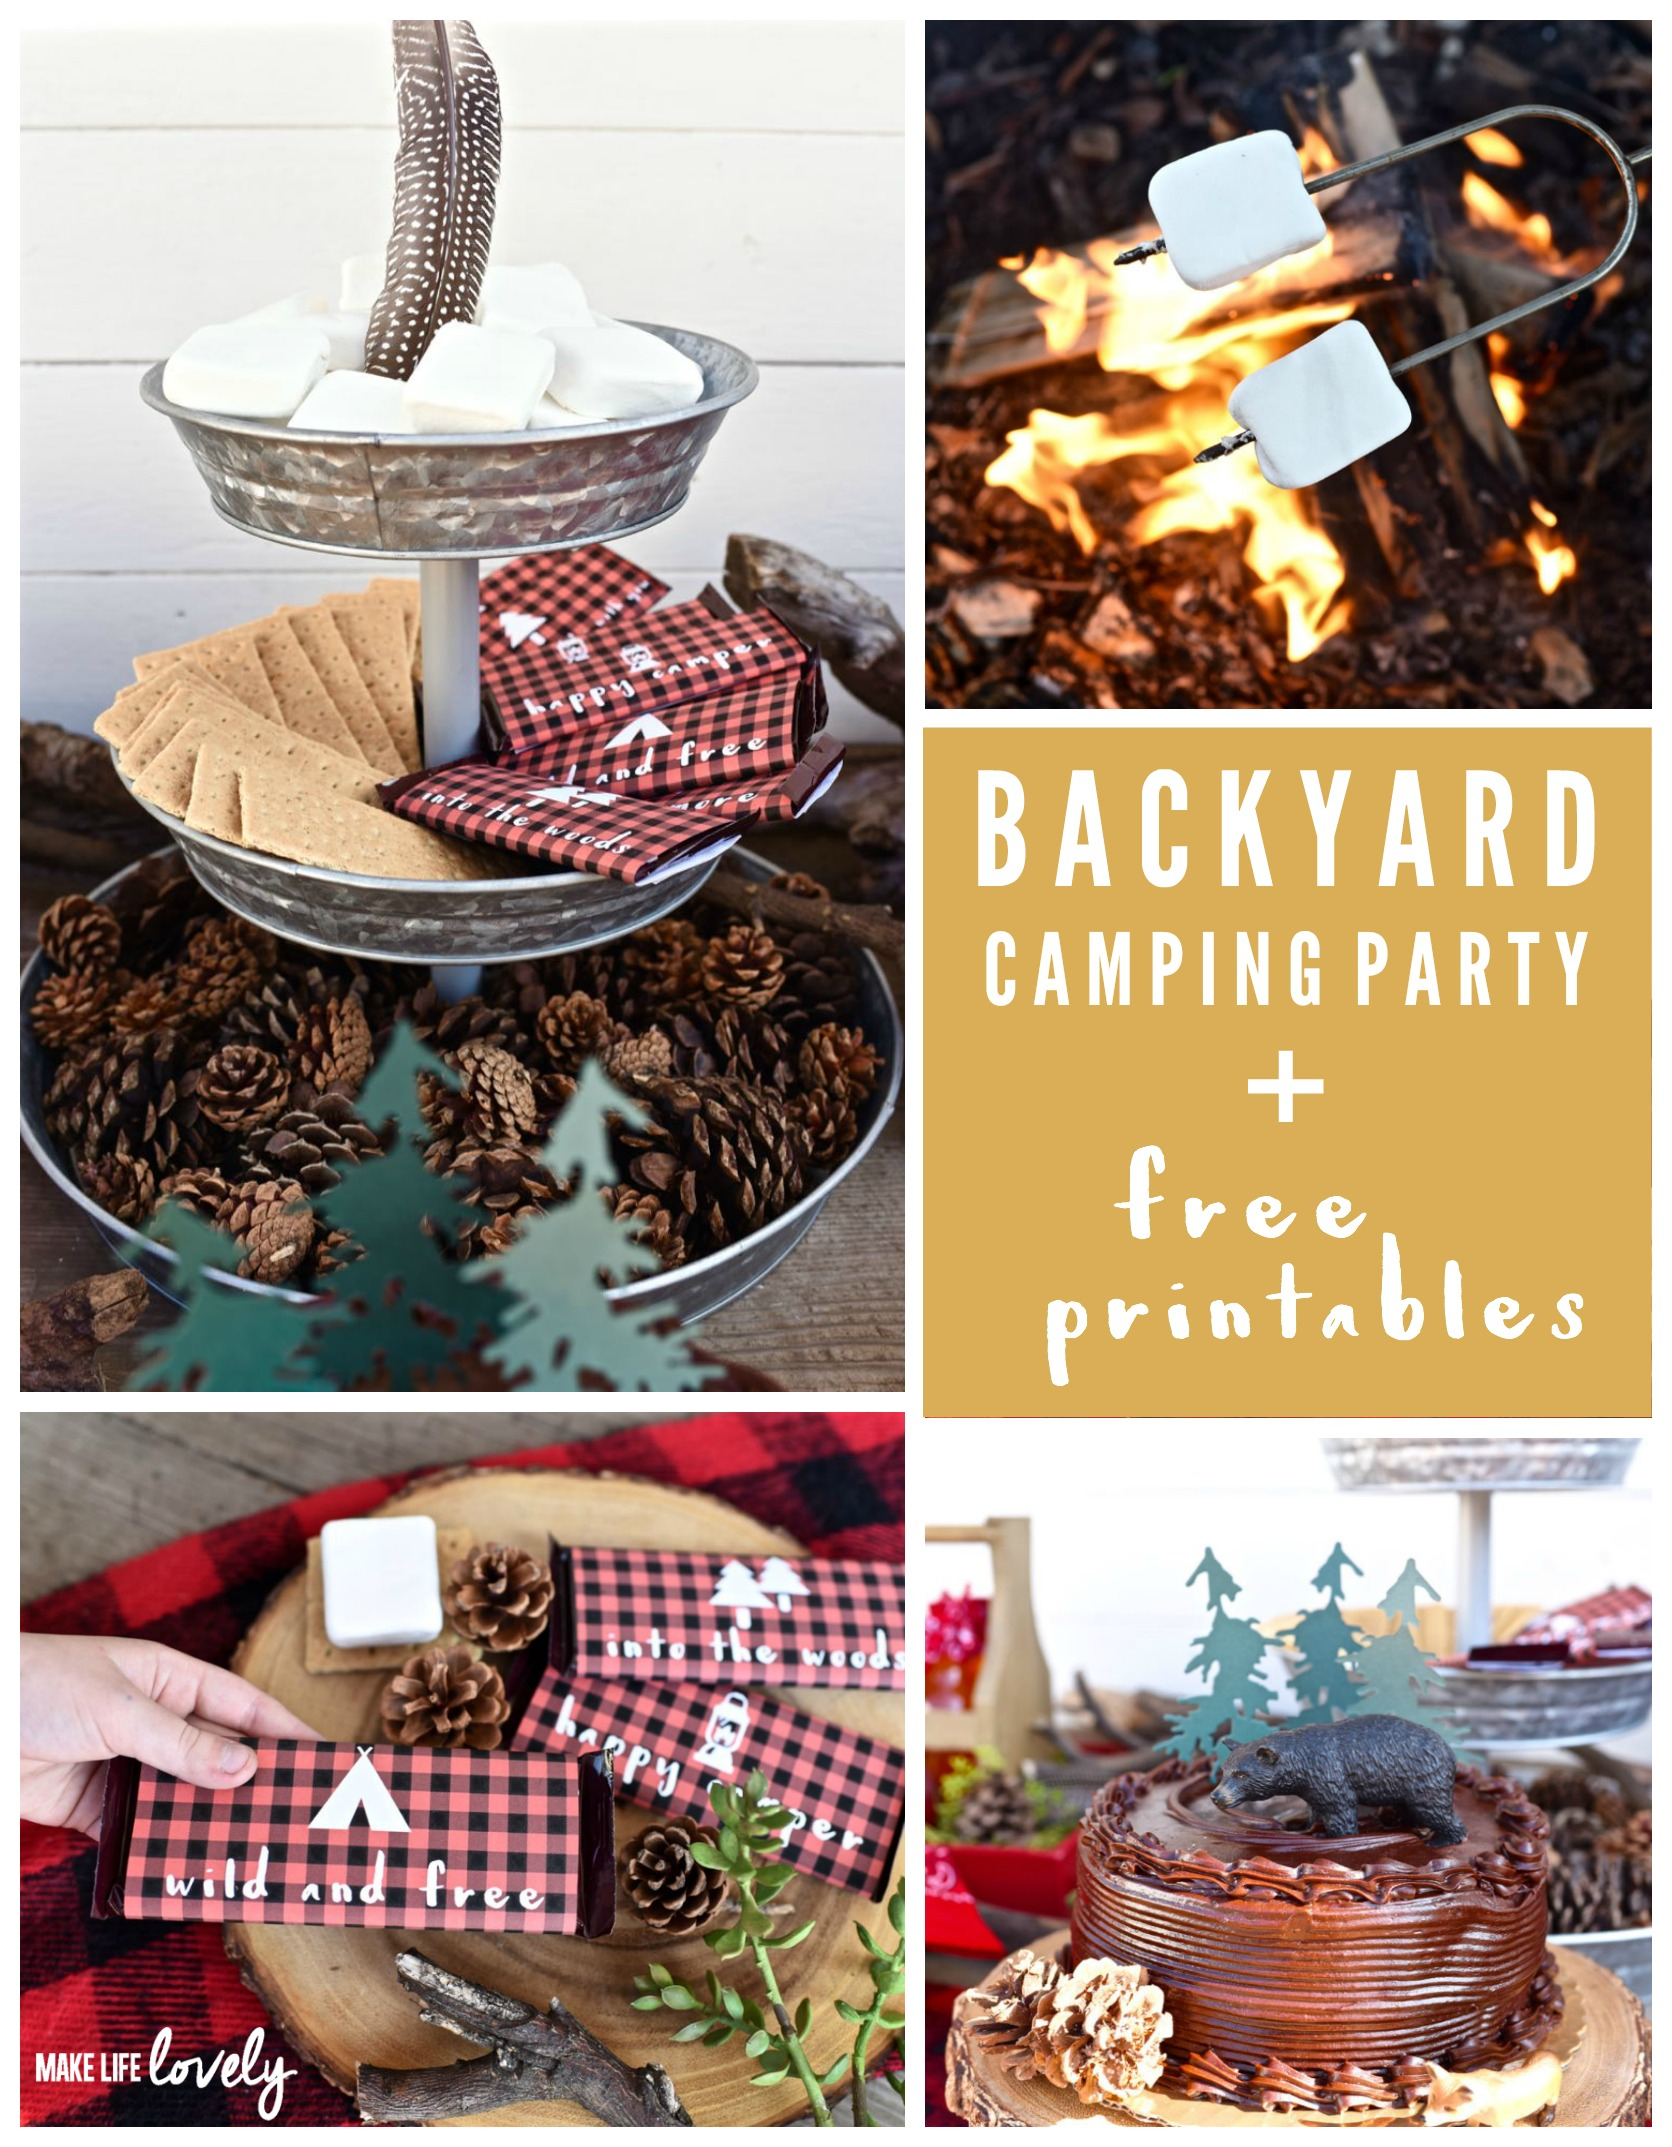 19.backyard camping party make life lovely with backyard camping party ideas via SIMPHOME.COM